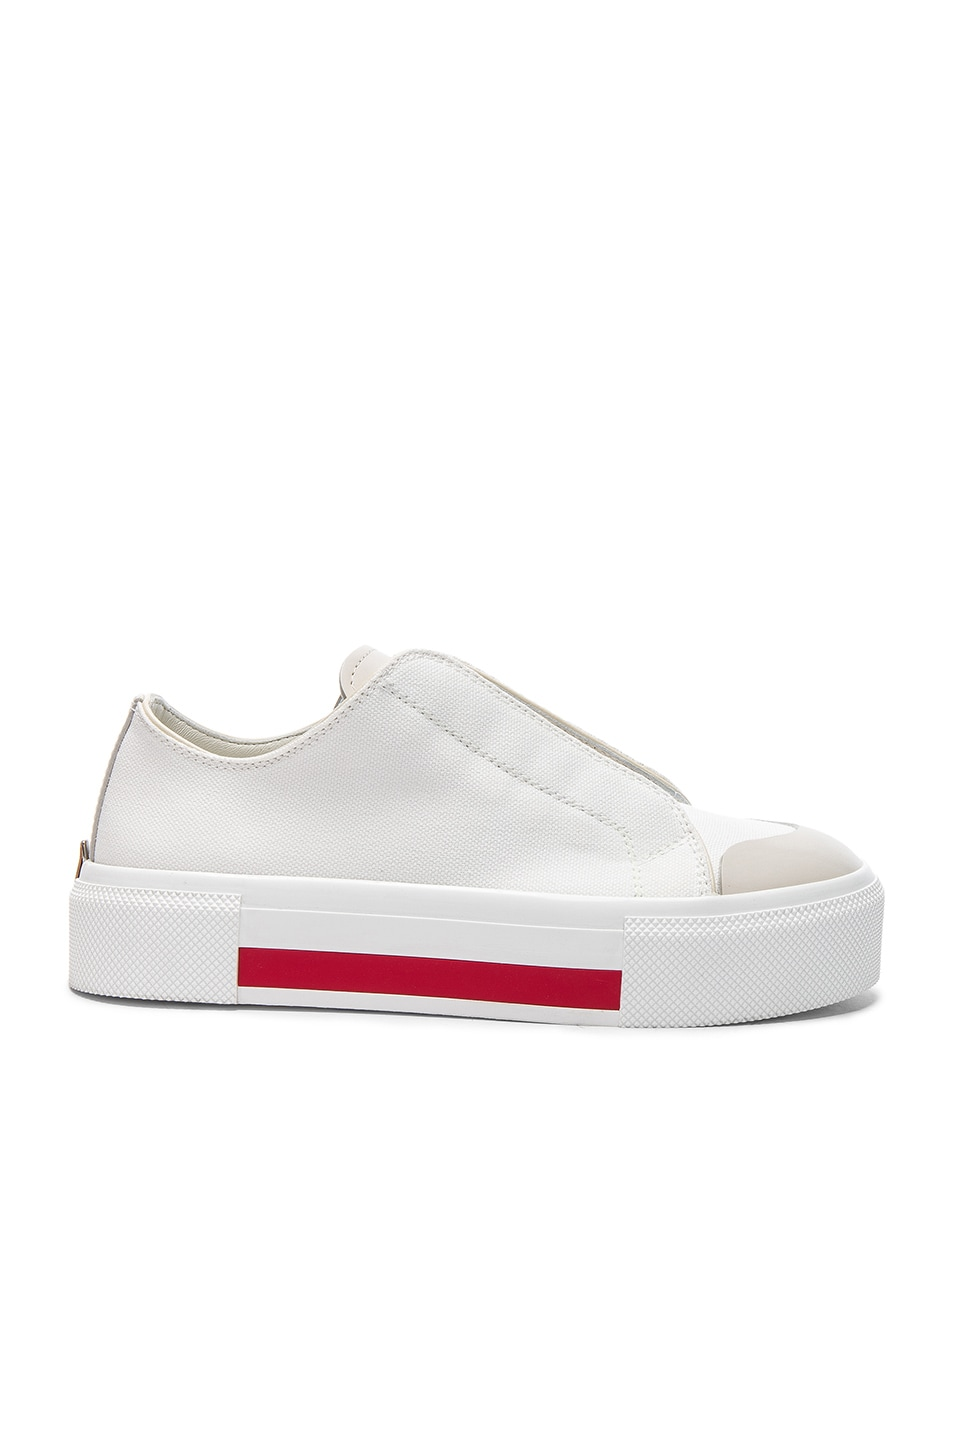 Image 1 of Alexander McQueen Canvas Platform Slide Sneakers in Ivory